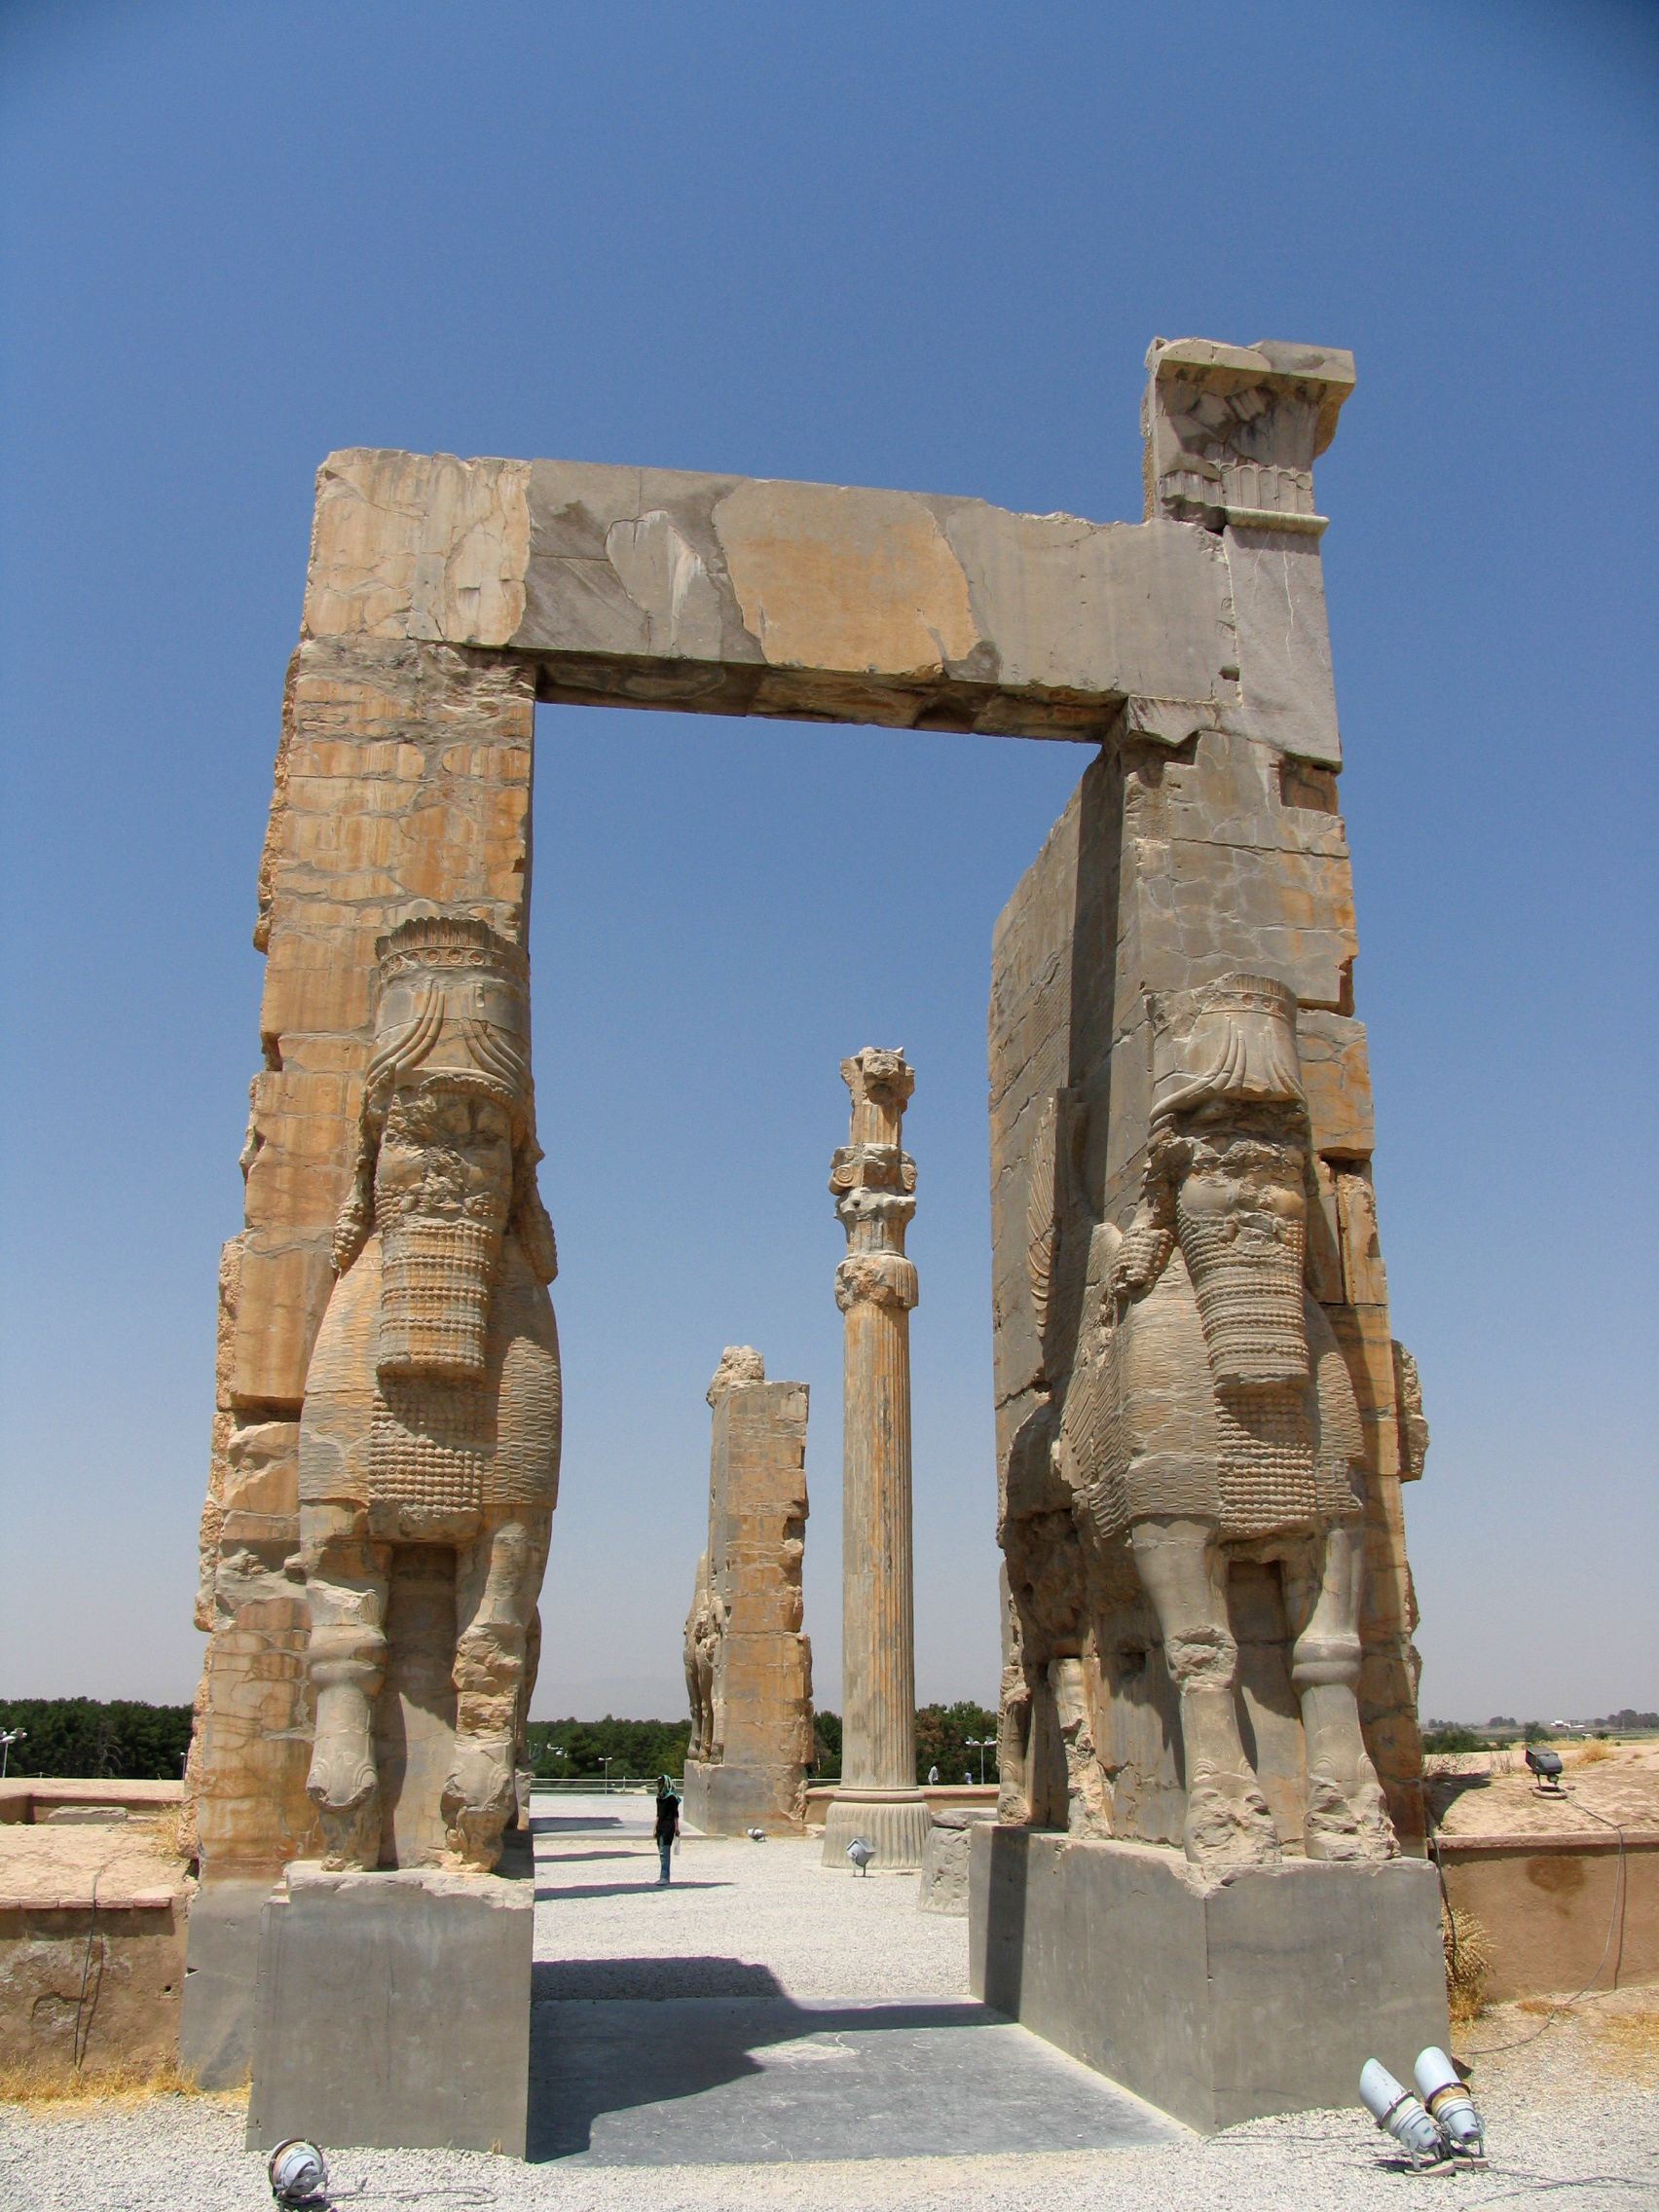 Persepolis Iran 2005 International Council On Monuments And Sites